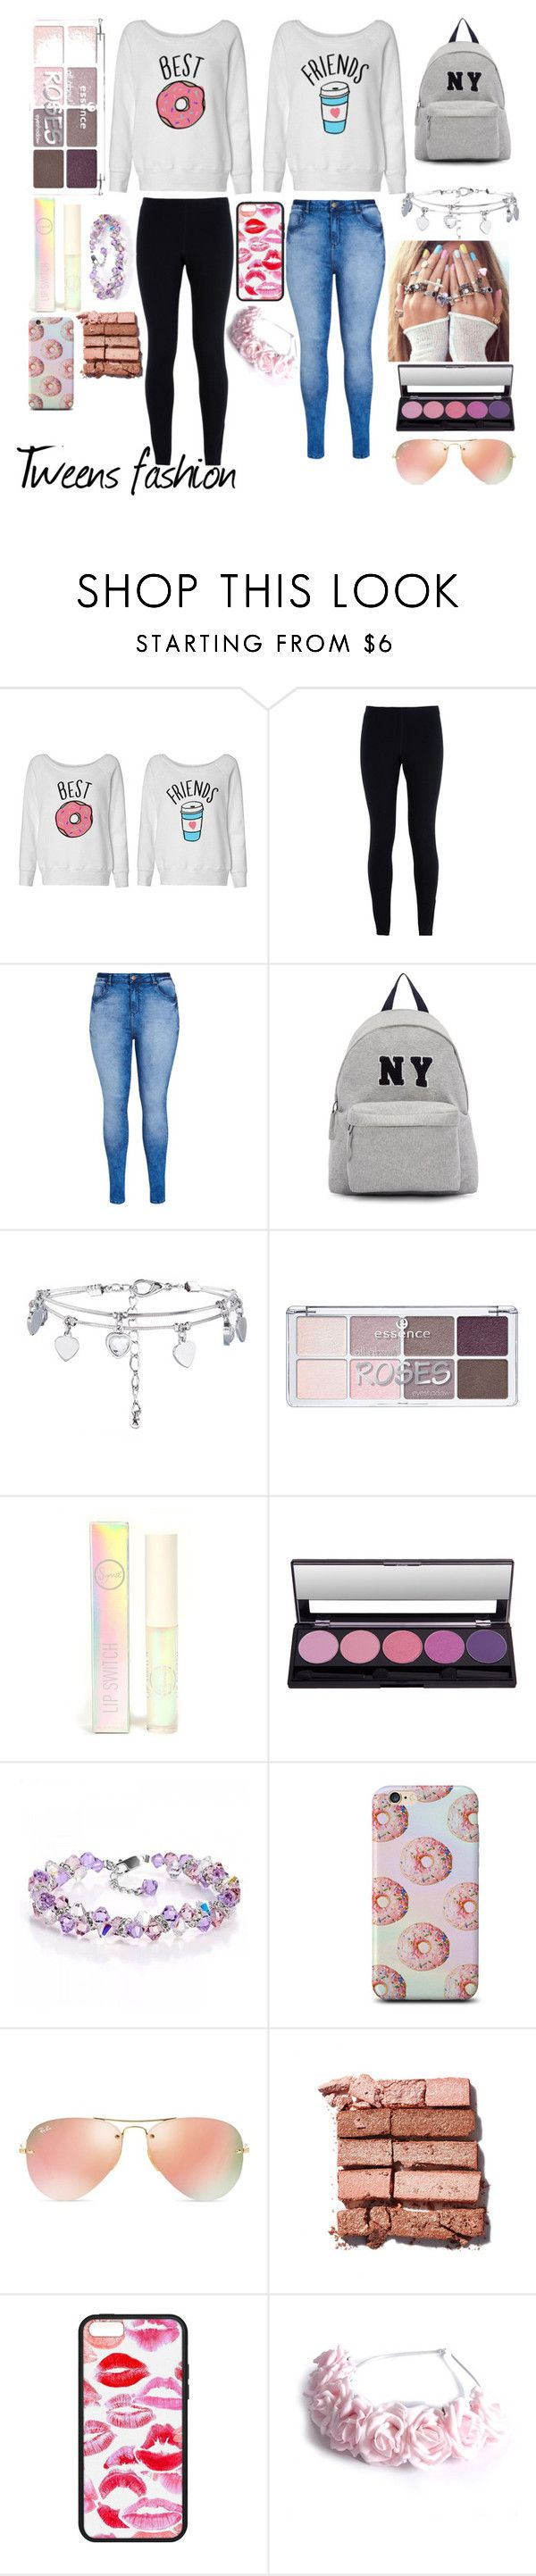 """tweens fashion"" by directioner-for-all-my-life ❤ liked on Polyvore featuring NIKE, City Chic, Joshua's, Sigma Beauty, Ray-Ban, Bobbi Brown Cosmetics and LOTTA"